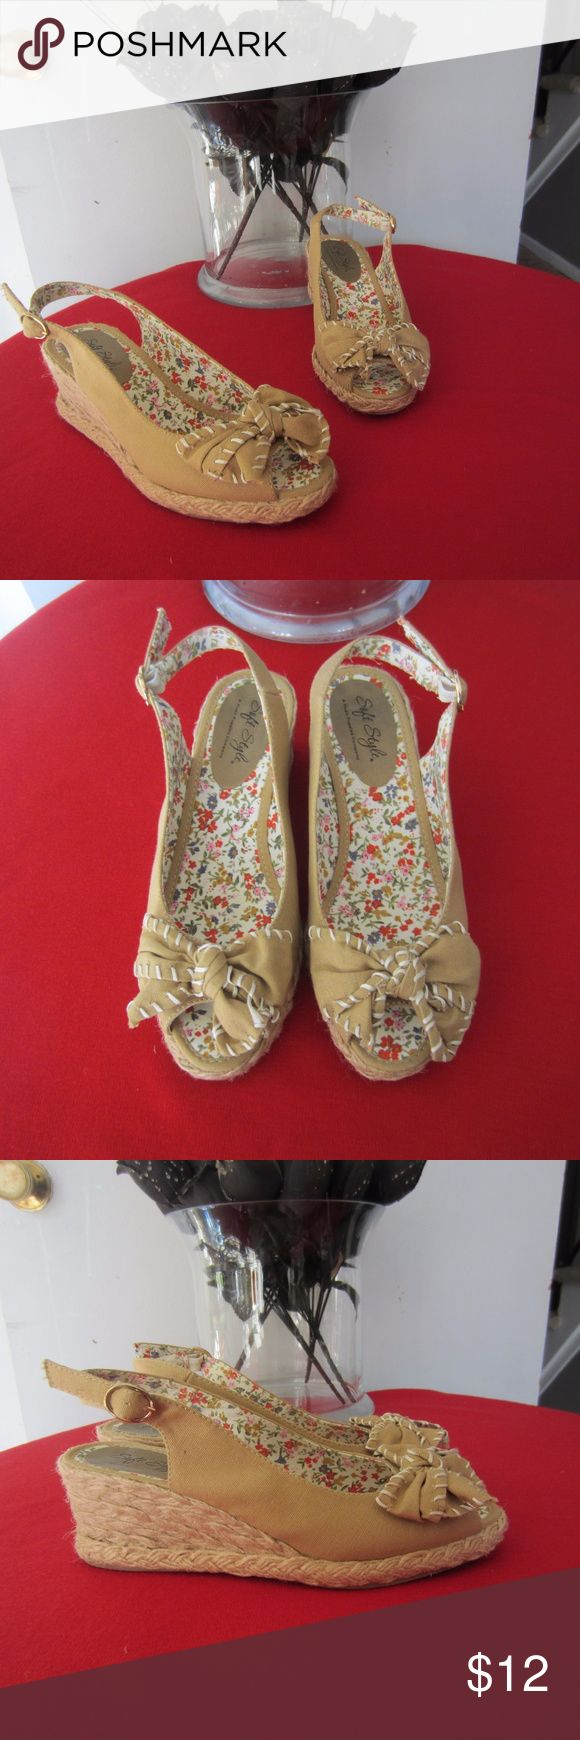 Hush Puppy Sandals SIze 7M Hush Puppies soft style tan wedge heel sandals. Preowned in great condition. Size 7M Hush Puppies Shoes Sandals